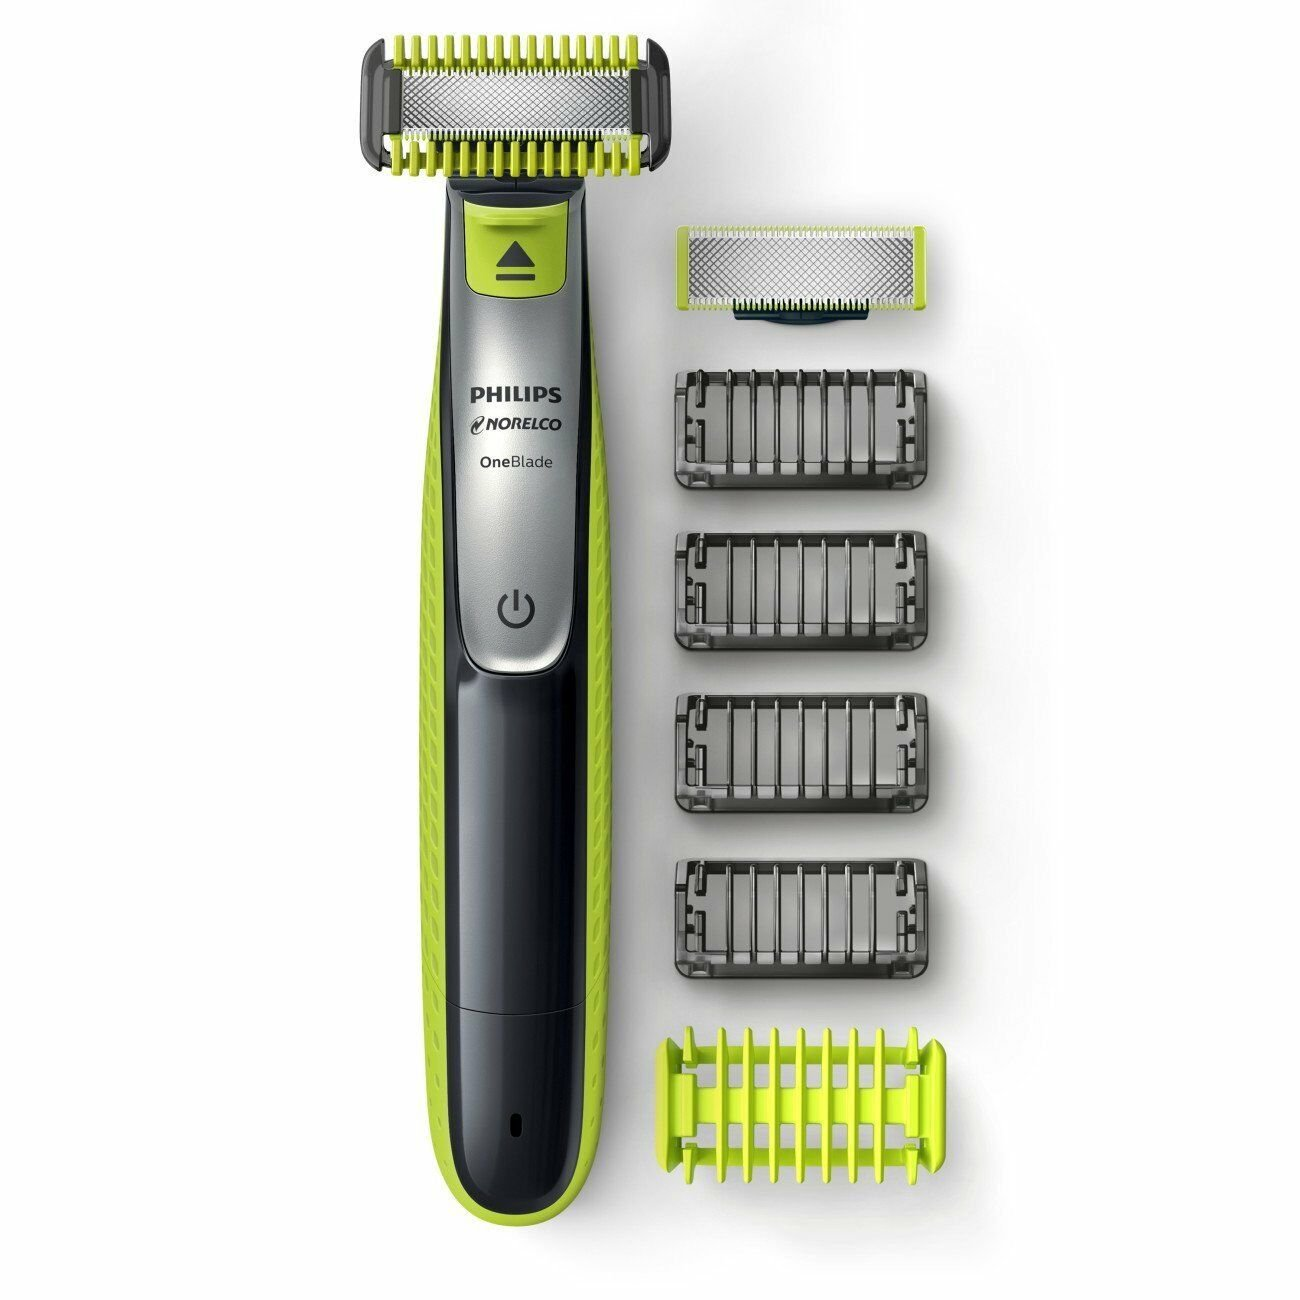 Philips Norelco OneBlade Face/Body hybrid electric trimmer and shaver, QP2630/70